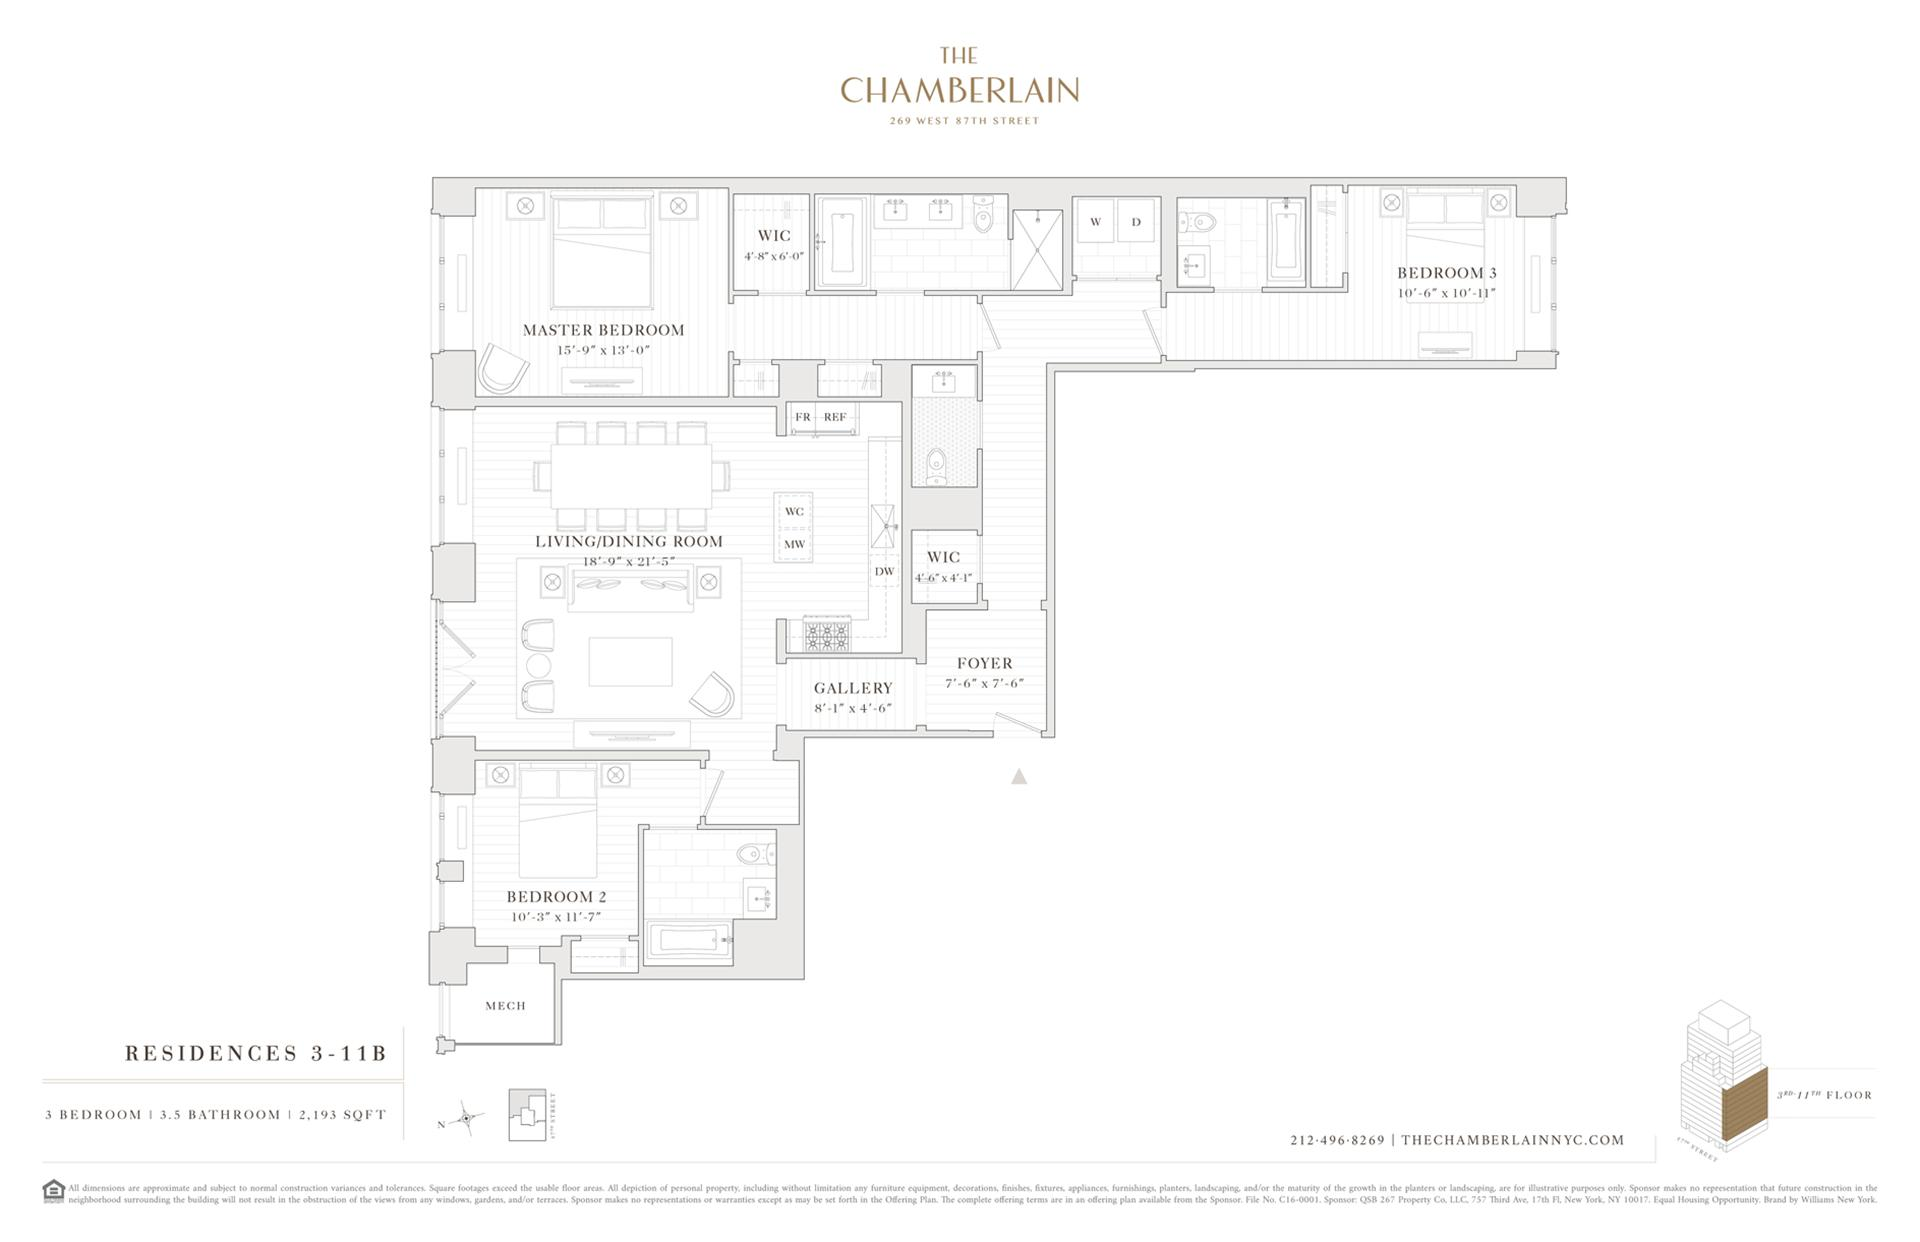 Floor plan of 269 West 87th St, 4B - Upper West Side, New York